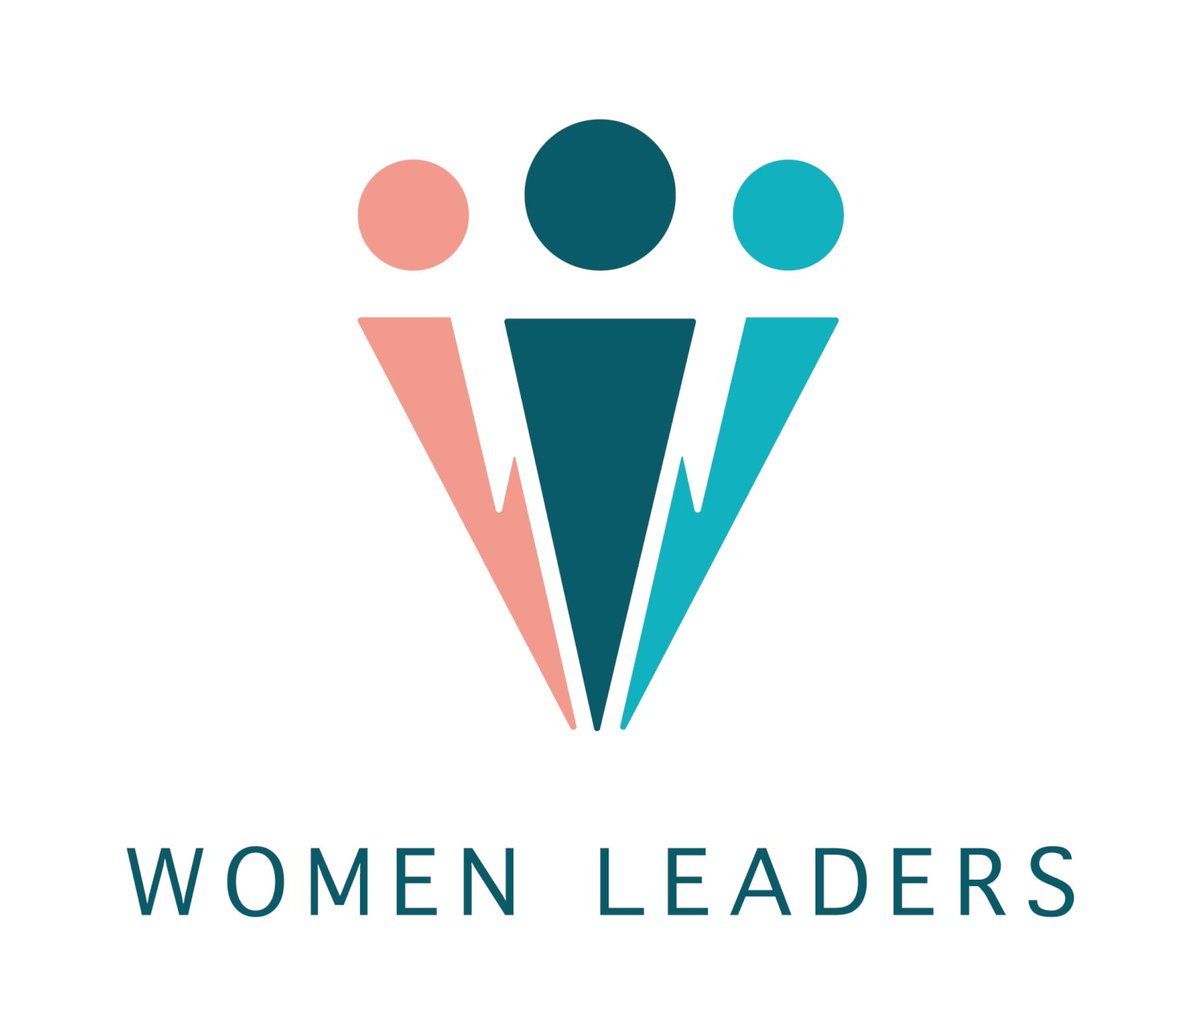 Nominations for @UK_WLs close on Friday. Find out how to nominate here: https://t.co/X0zPVB6W21 #MiltonKeynes #Business https://t.co/UzzDJN2oDO